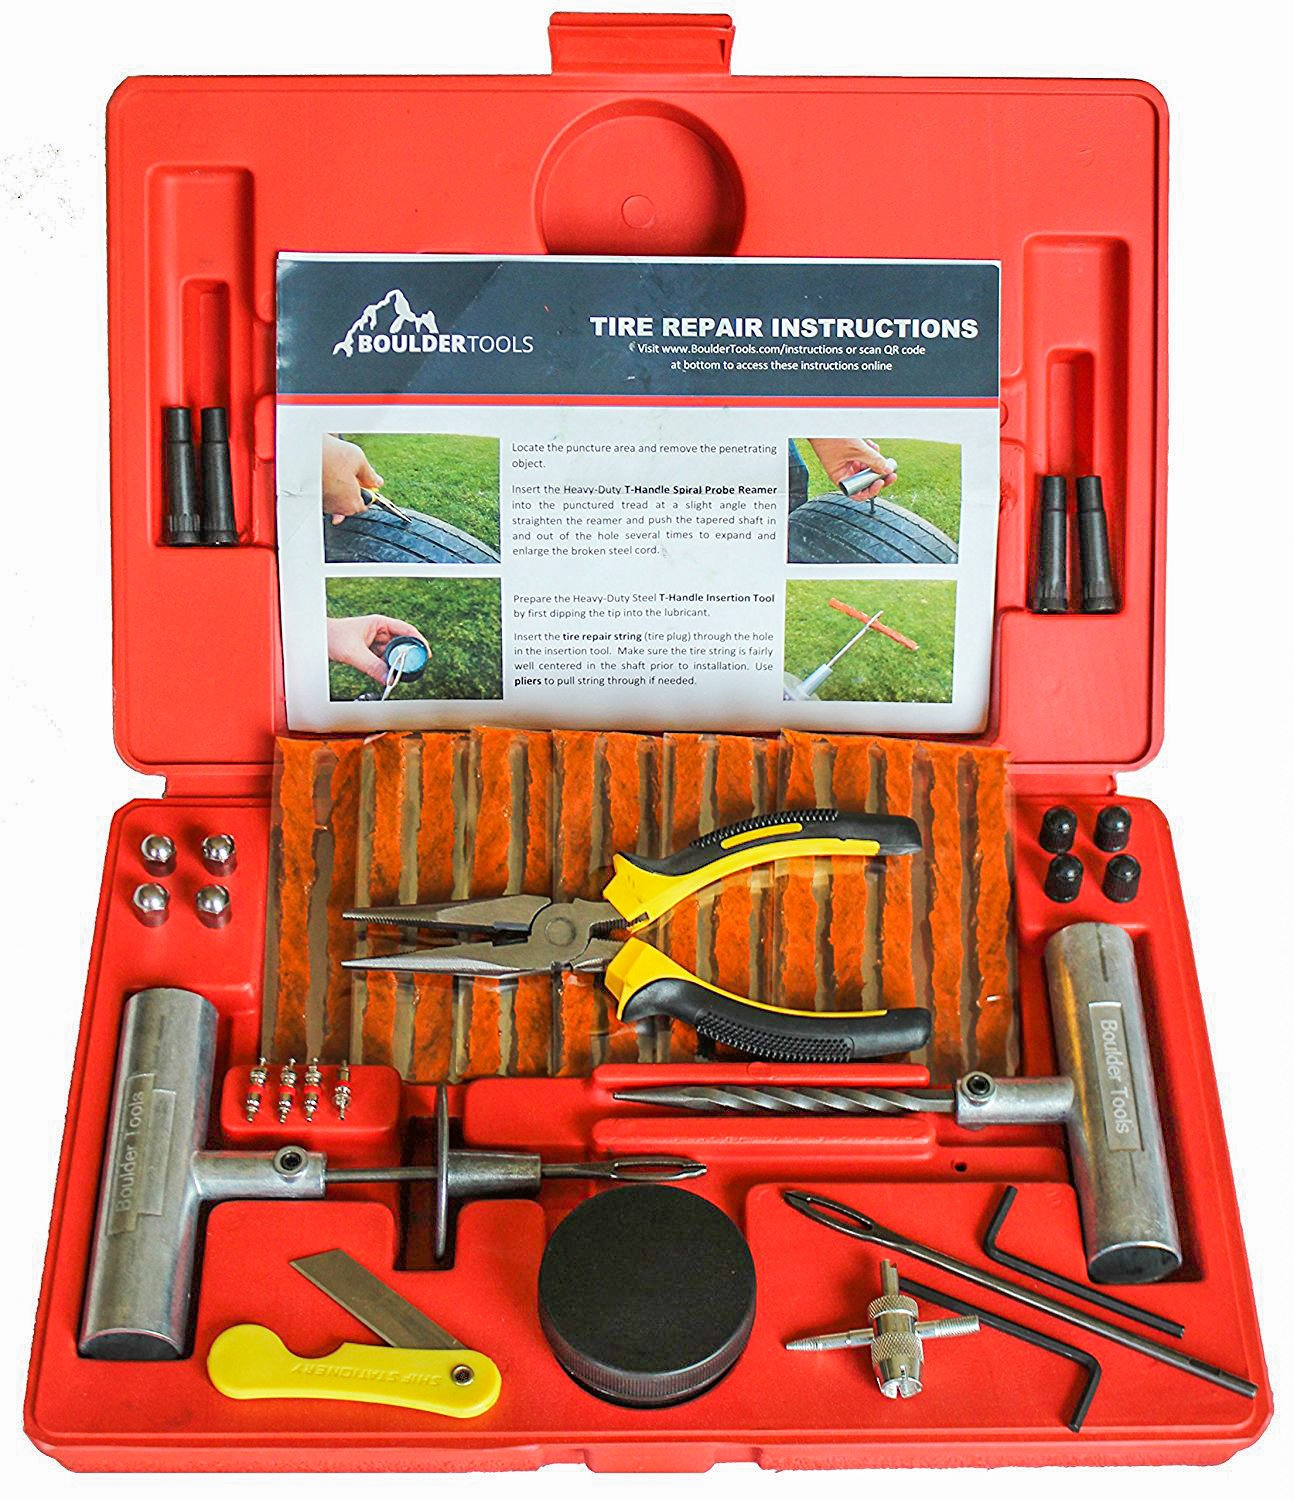 Boulder Tools – Heavy Duty Tire Repair Kit for Car, Truck, RV, Jeep, ATV, Motorcycle, Tractor, Trailer. Flat Tire Puncture Repair Kit